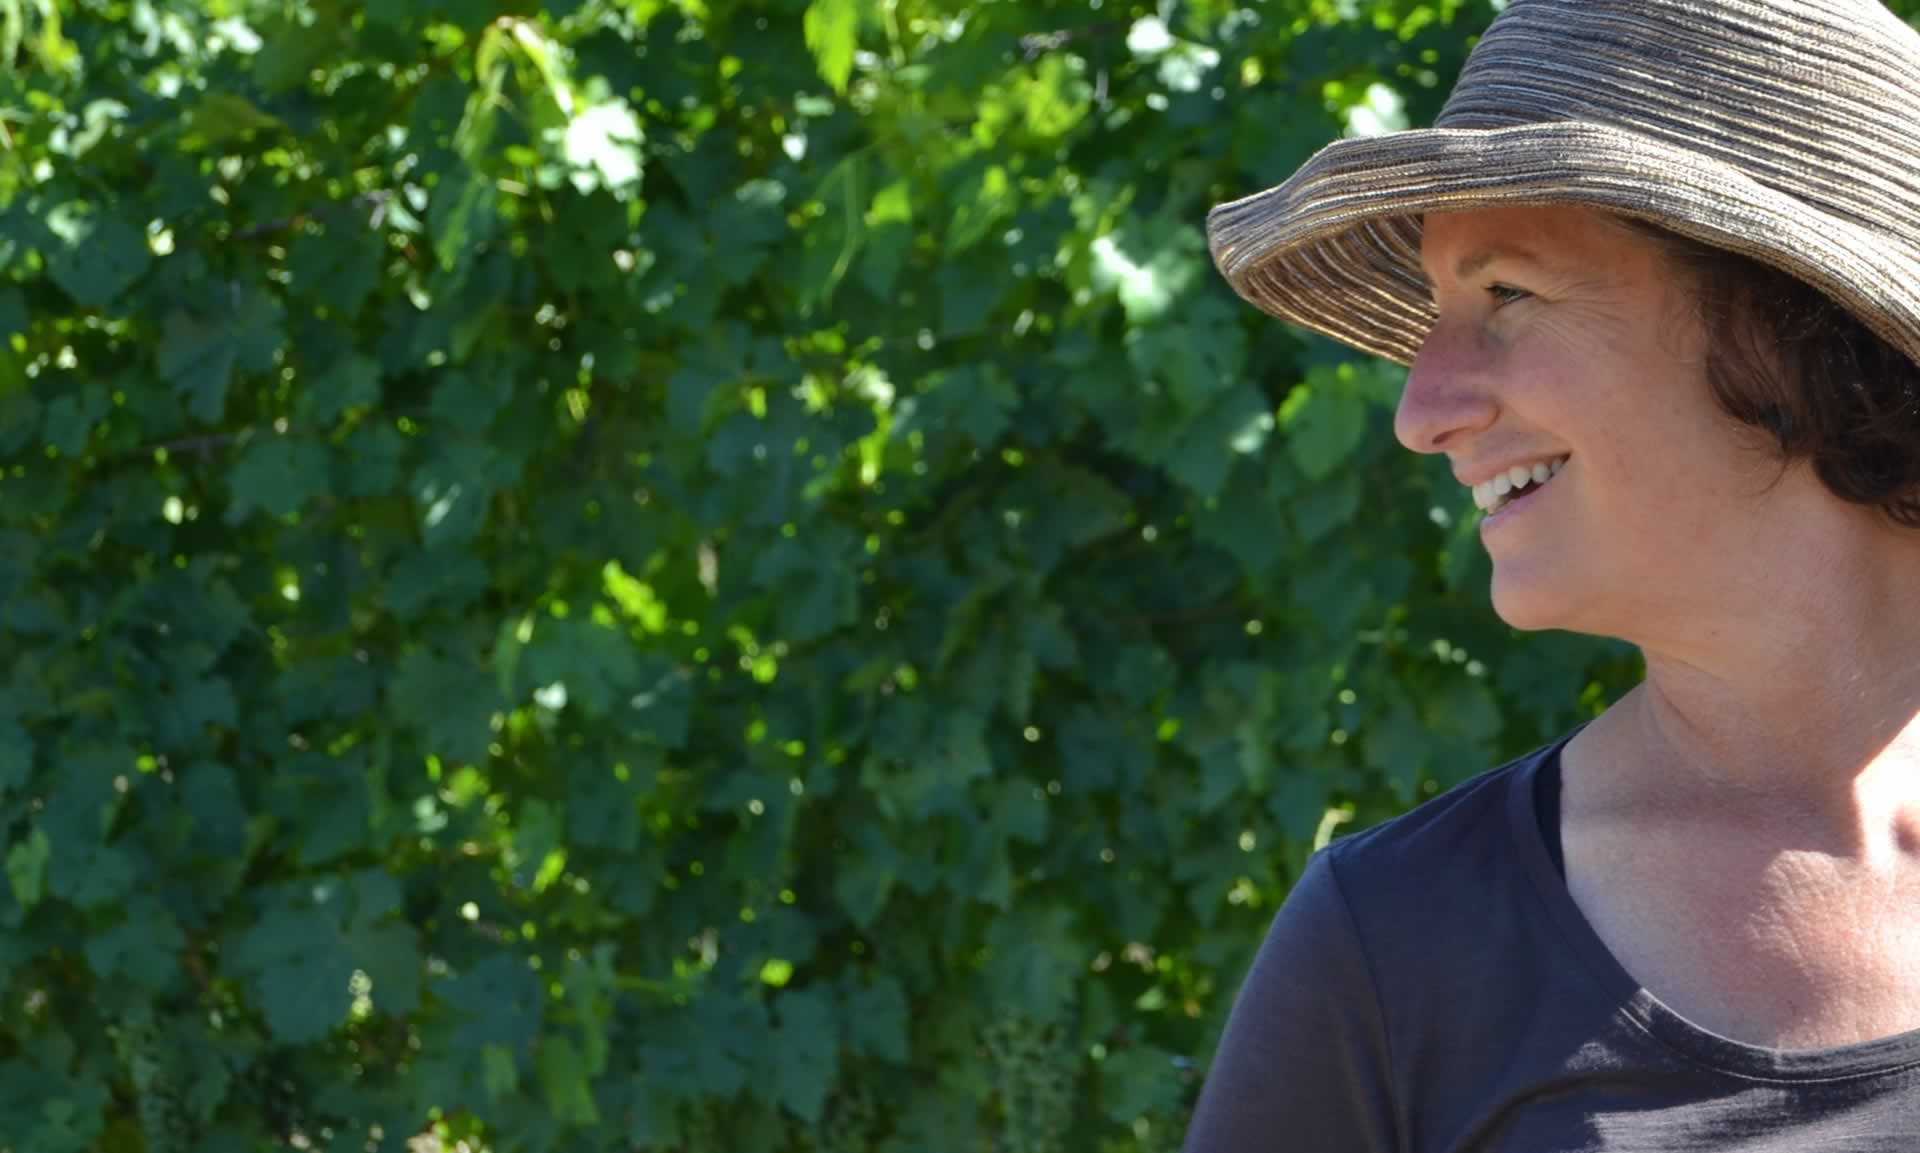 Daphne Amory Biodynamic Viticulture Agriculture Farming Consultant